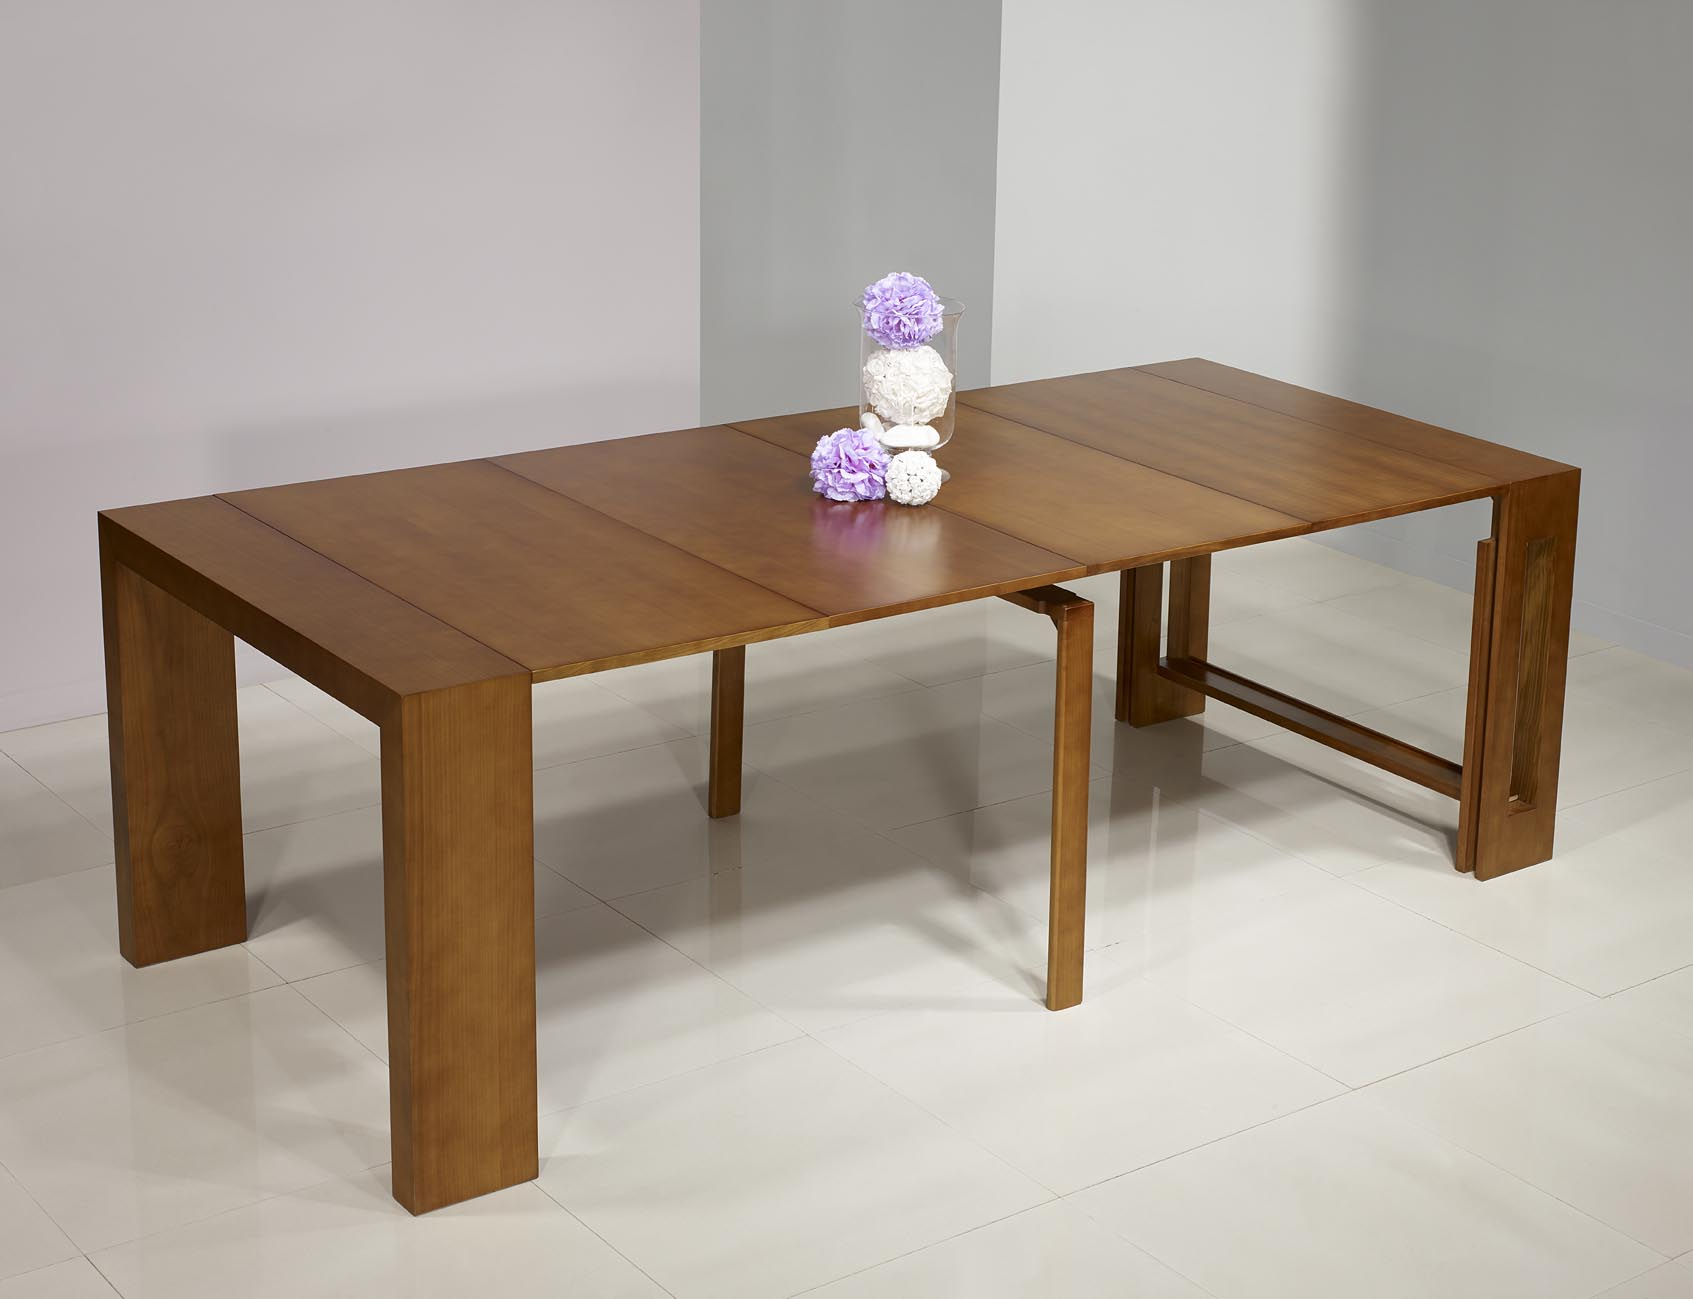 Console extensible en ch ne contemporaine 4 allonges meuble en ch ne massif - Table console extensible chene ...